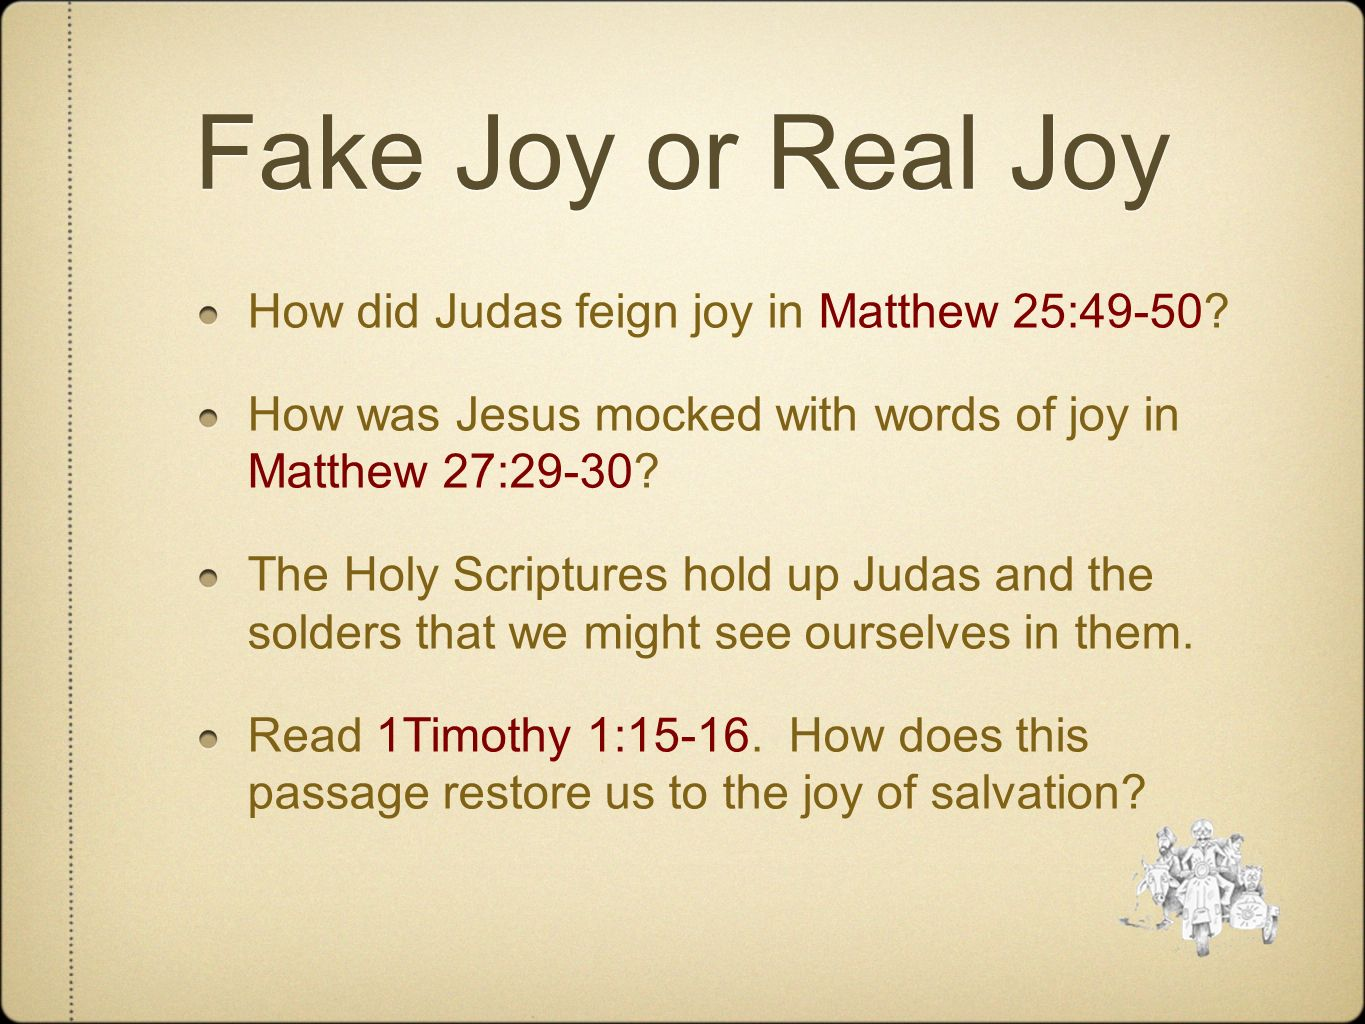 Fake Joy or Real Joy How did Judas feign joy in Matthew 25:49-50? How was Jesus mocked with words of joy in Matthew 27:29-30? The Holy Scriptures hold